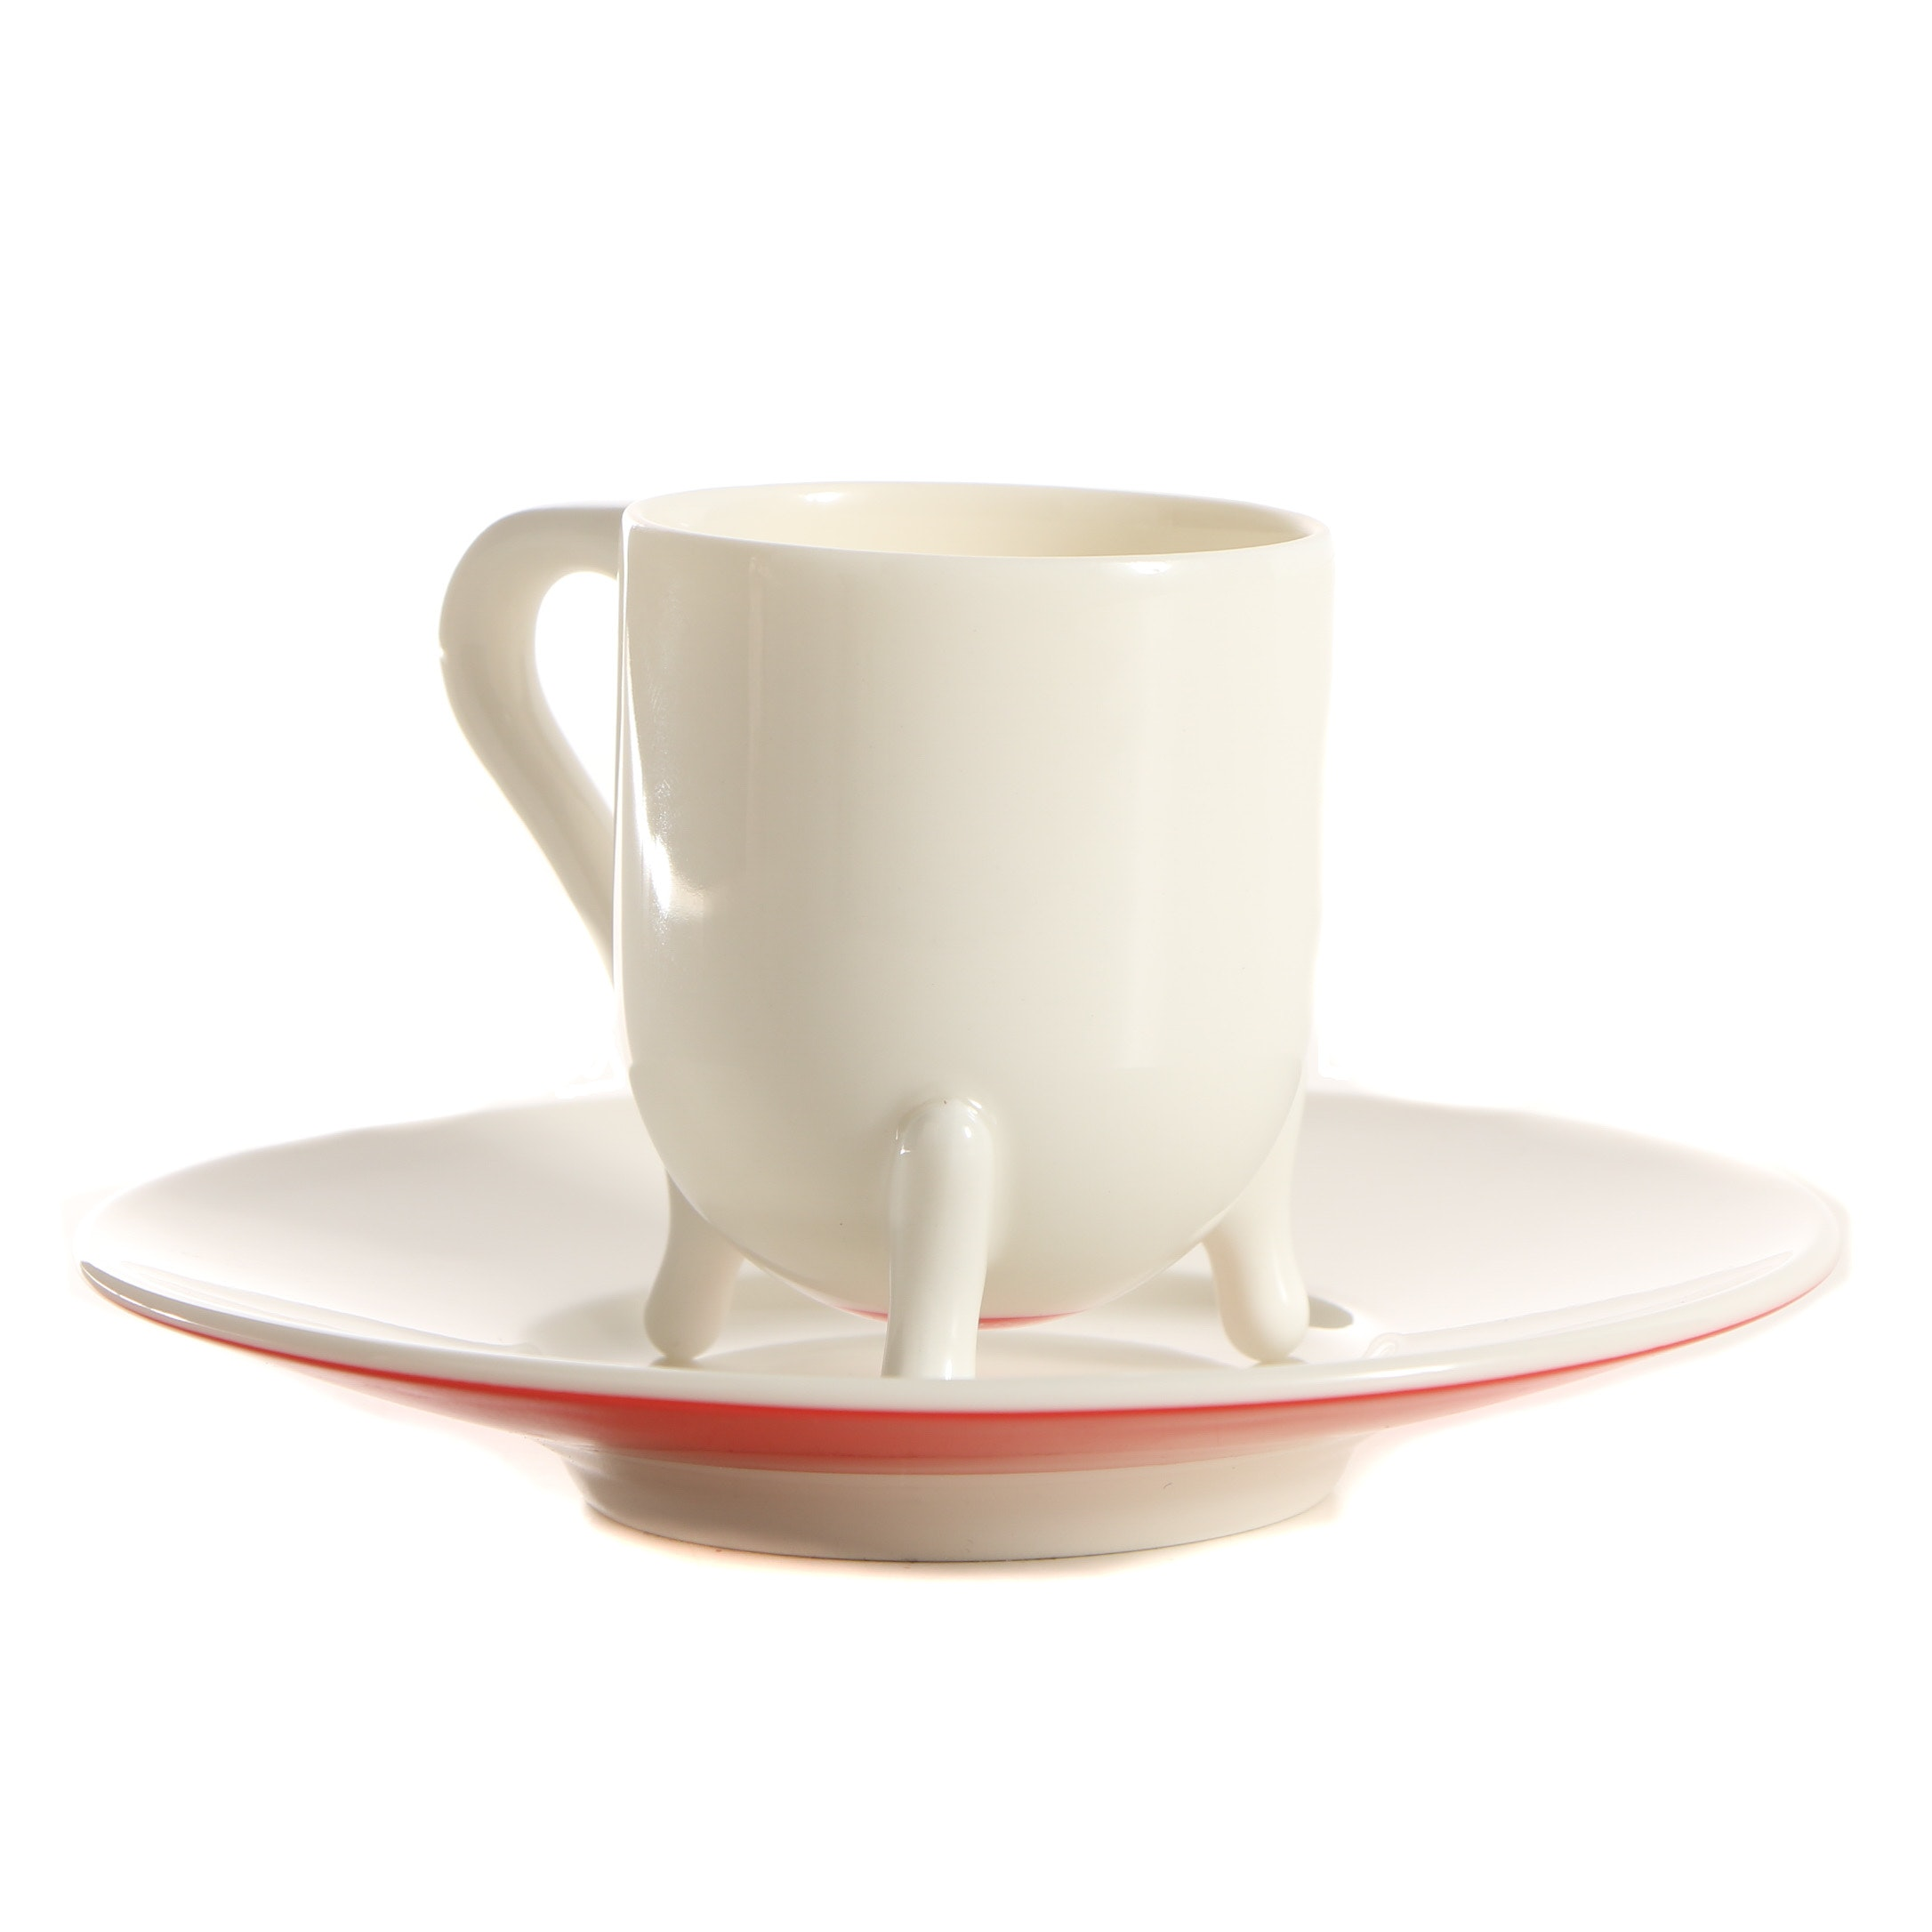 "Oscar Tusquets Blanca ""Victoria"" Porcelain Espresso Cup and Saucer"